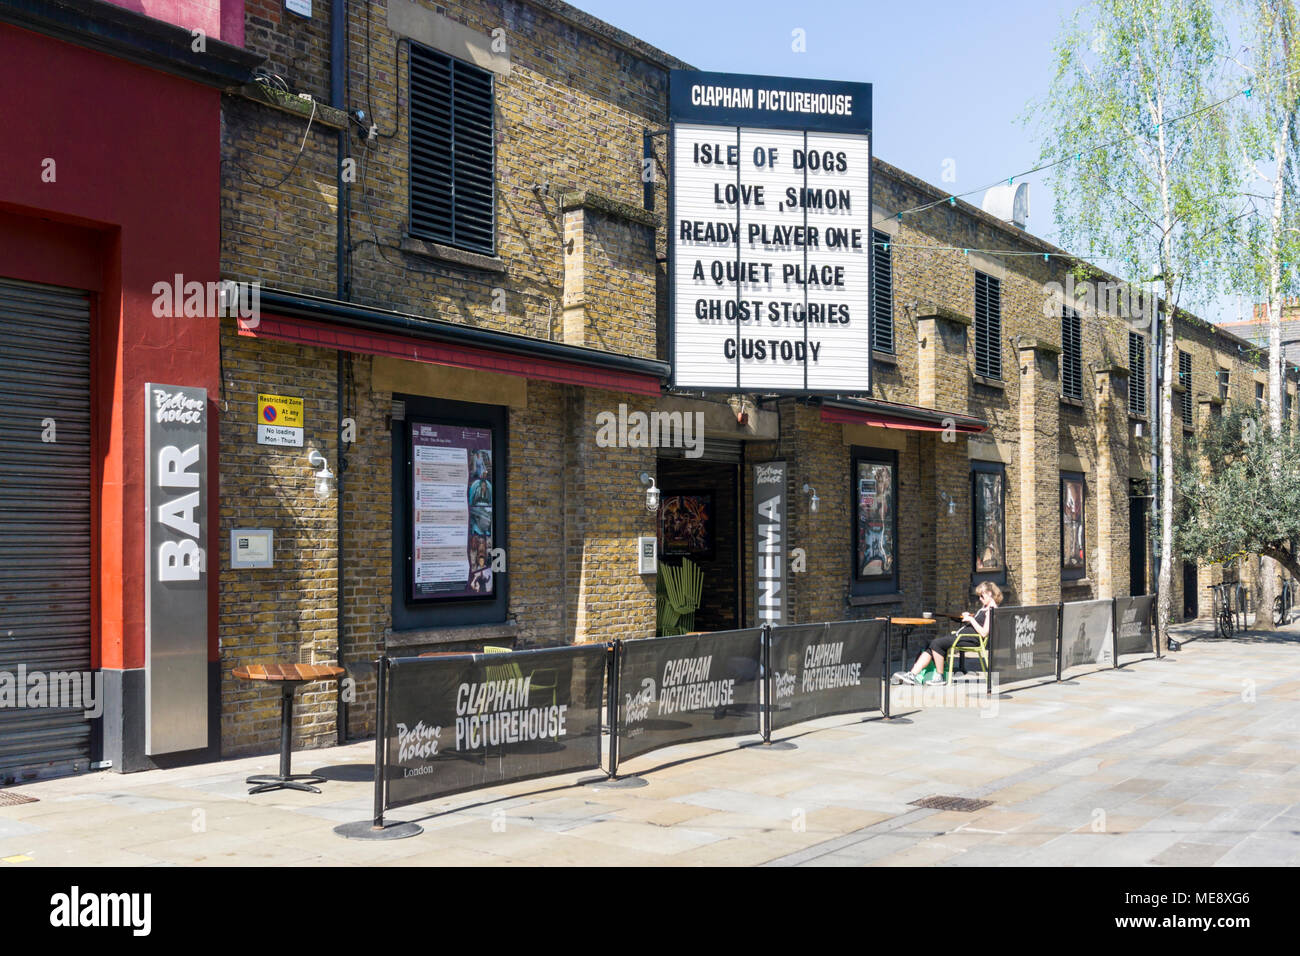 Clapham Picturehouse in Venn Street, Clapham Old Town, South London. - Stock Image